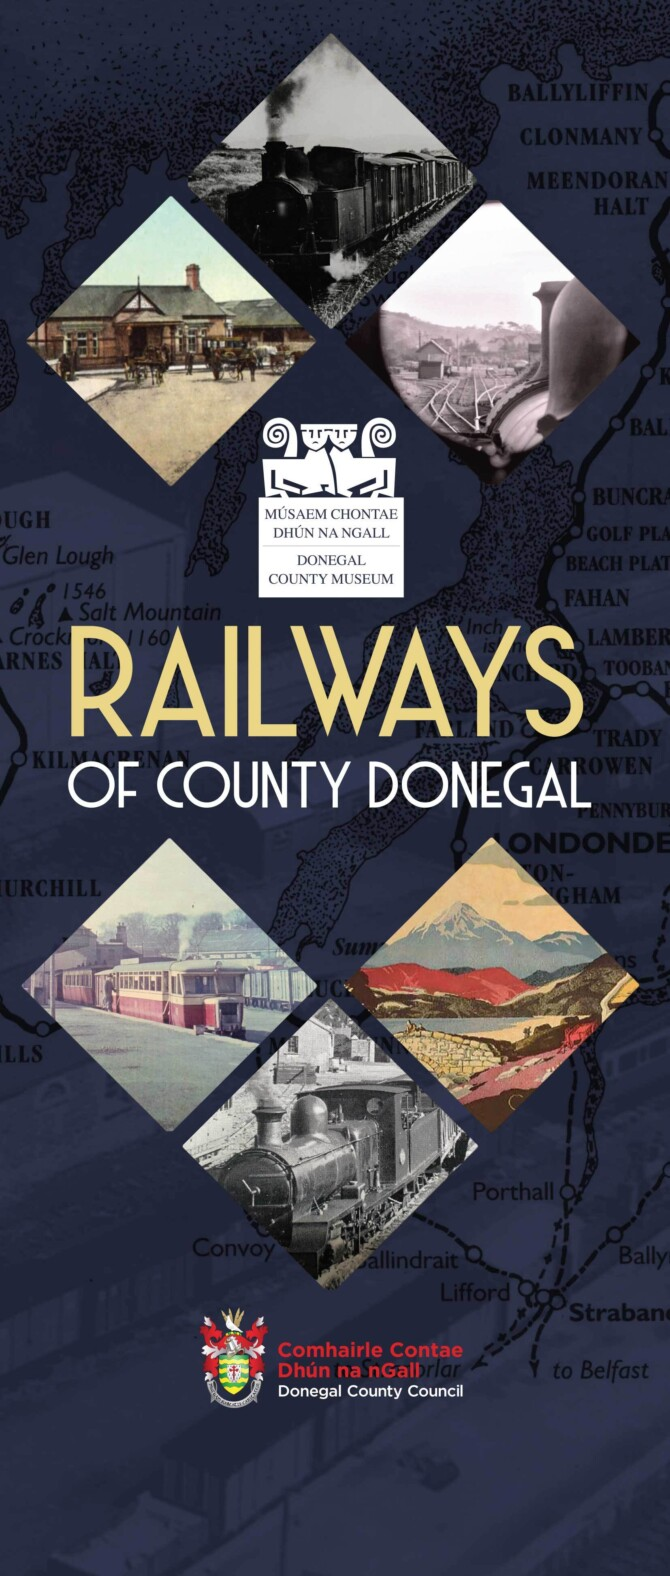 'The Railways of County Donegal'